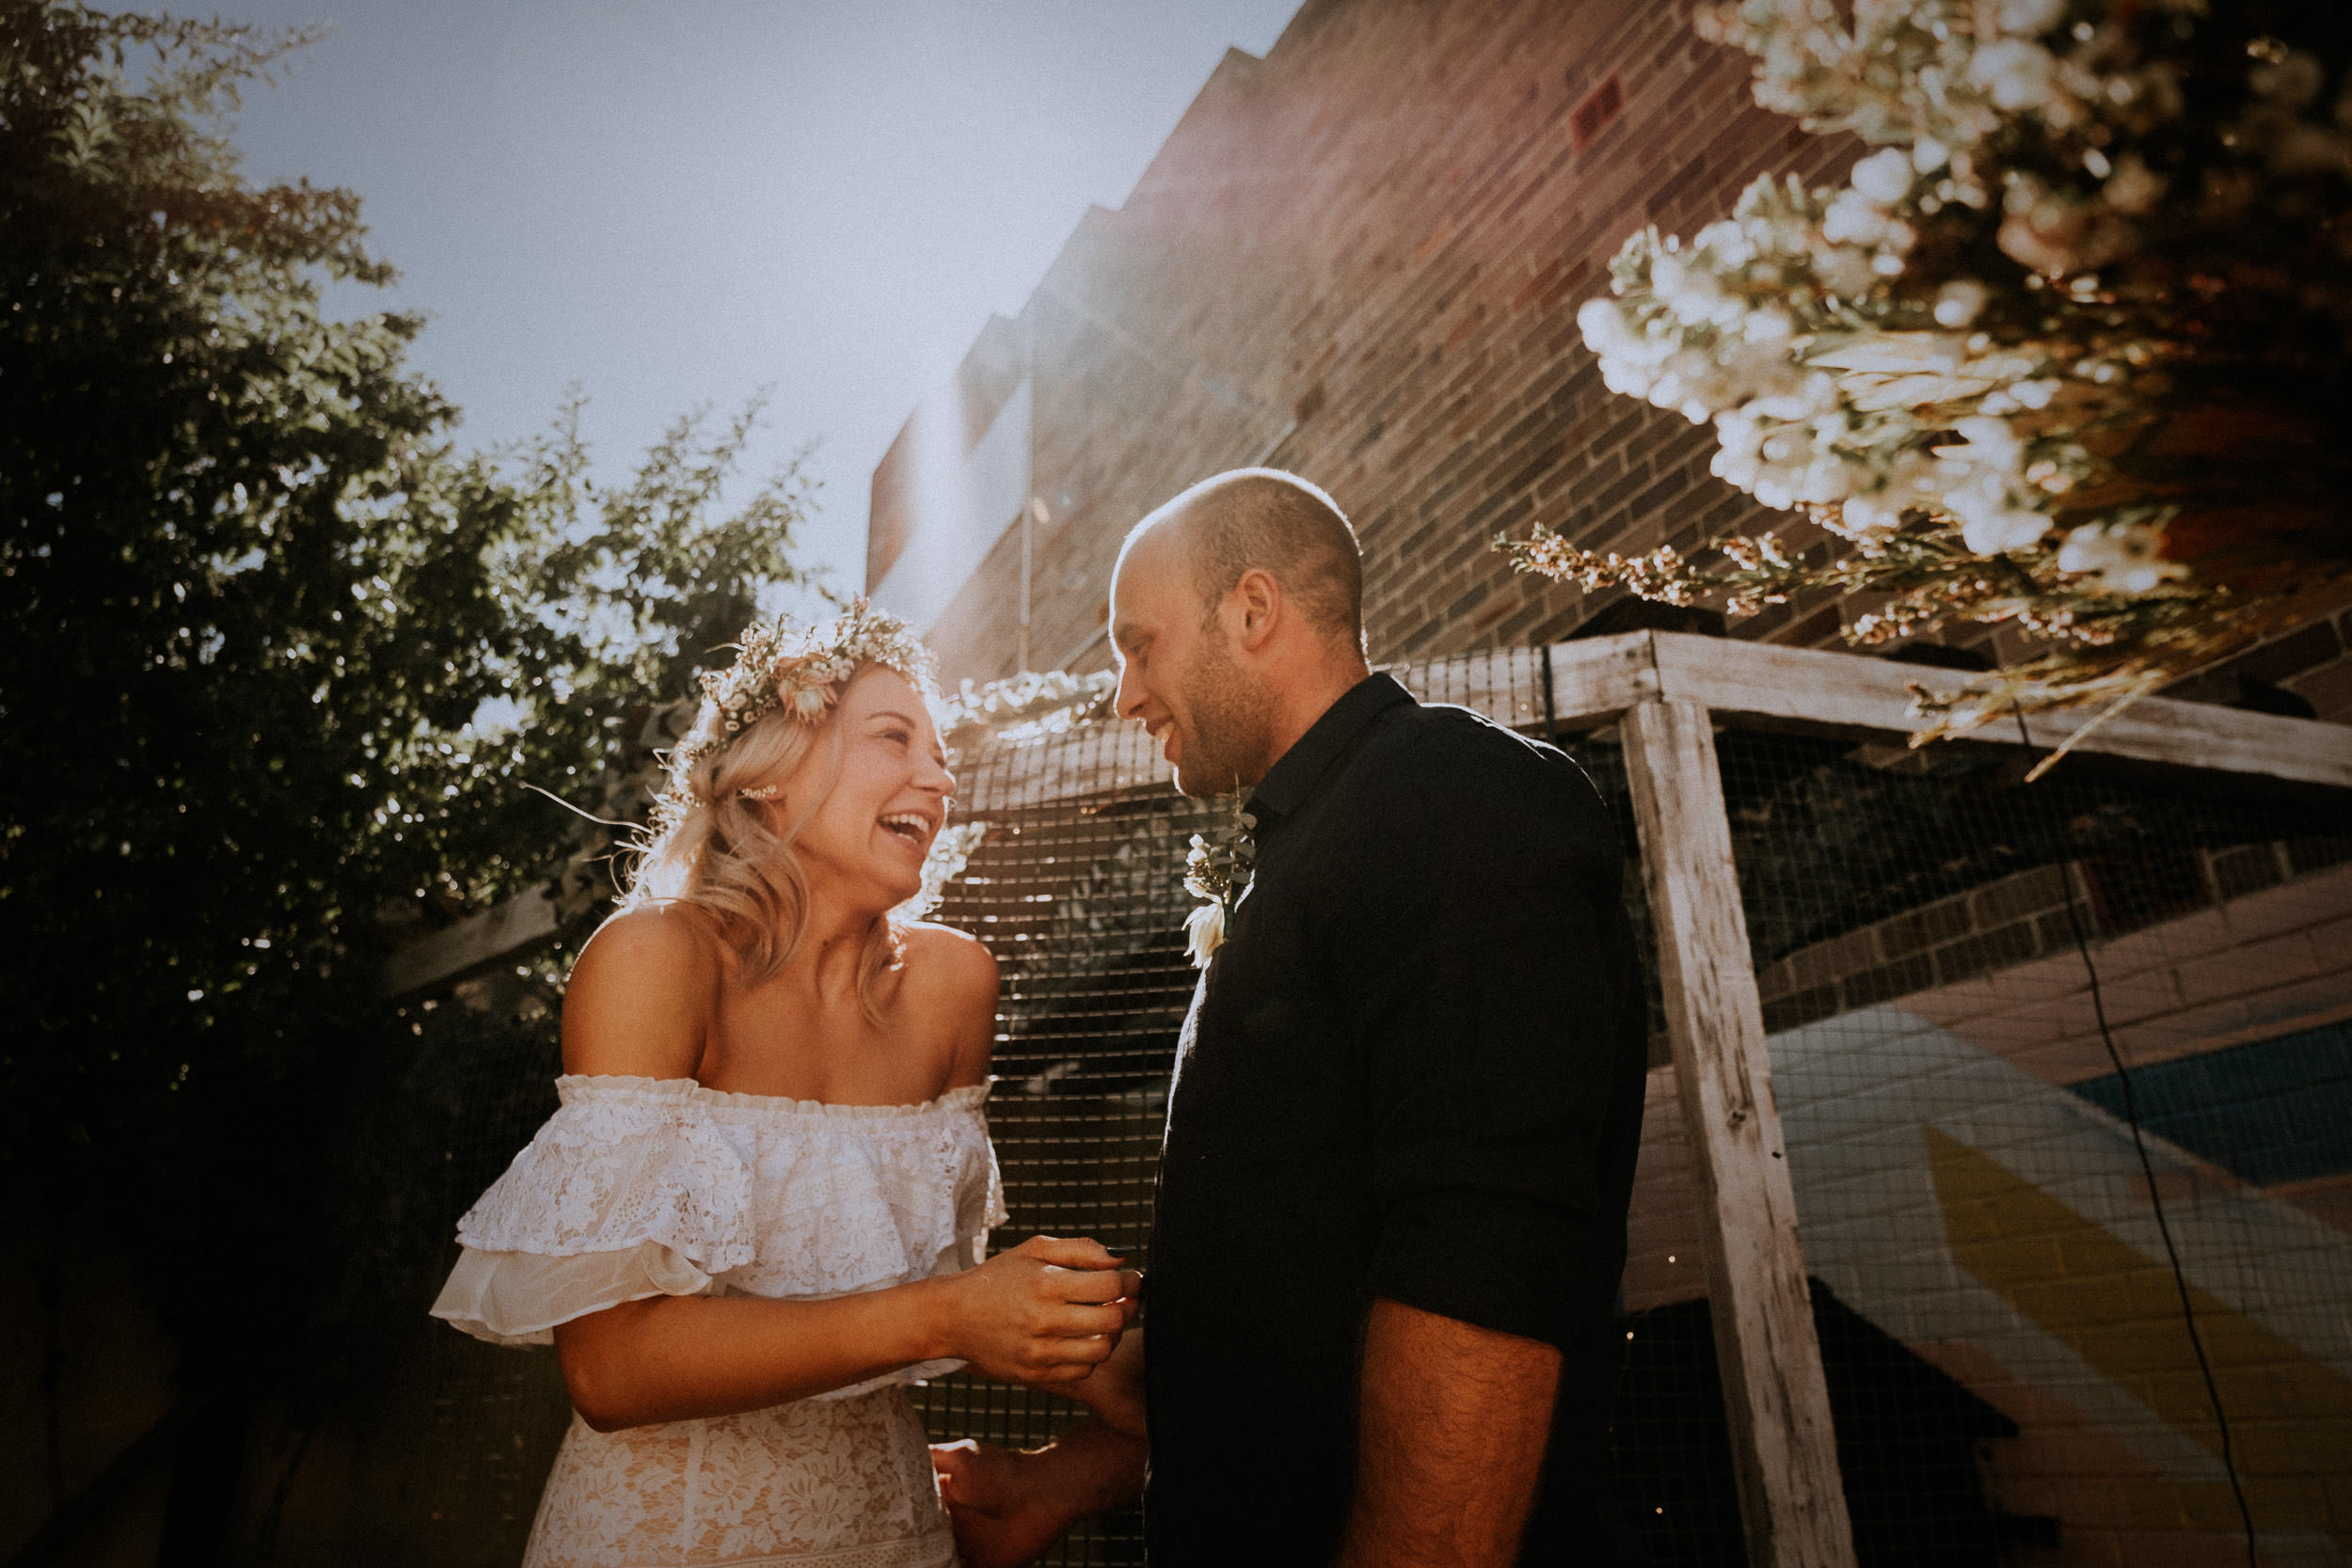 kings _ thieves - beth _ corey backyard airbnb elopement sydney - submission -188.jpg